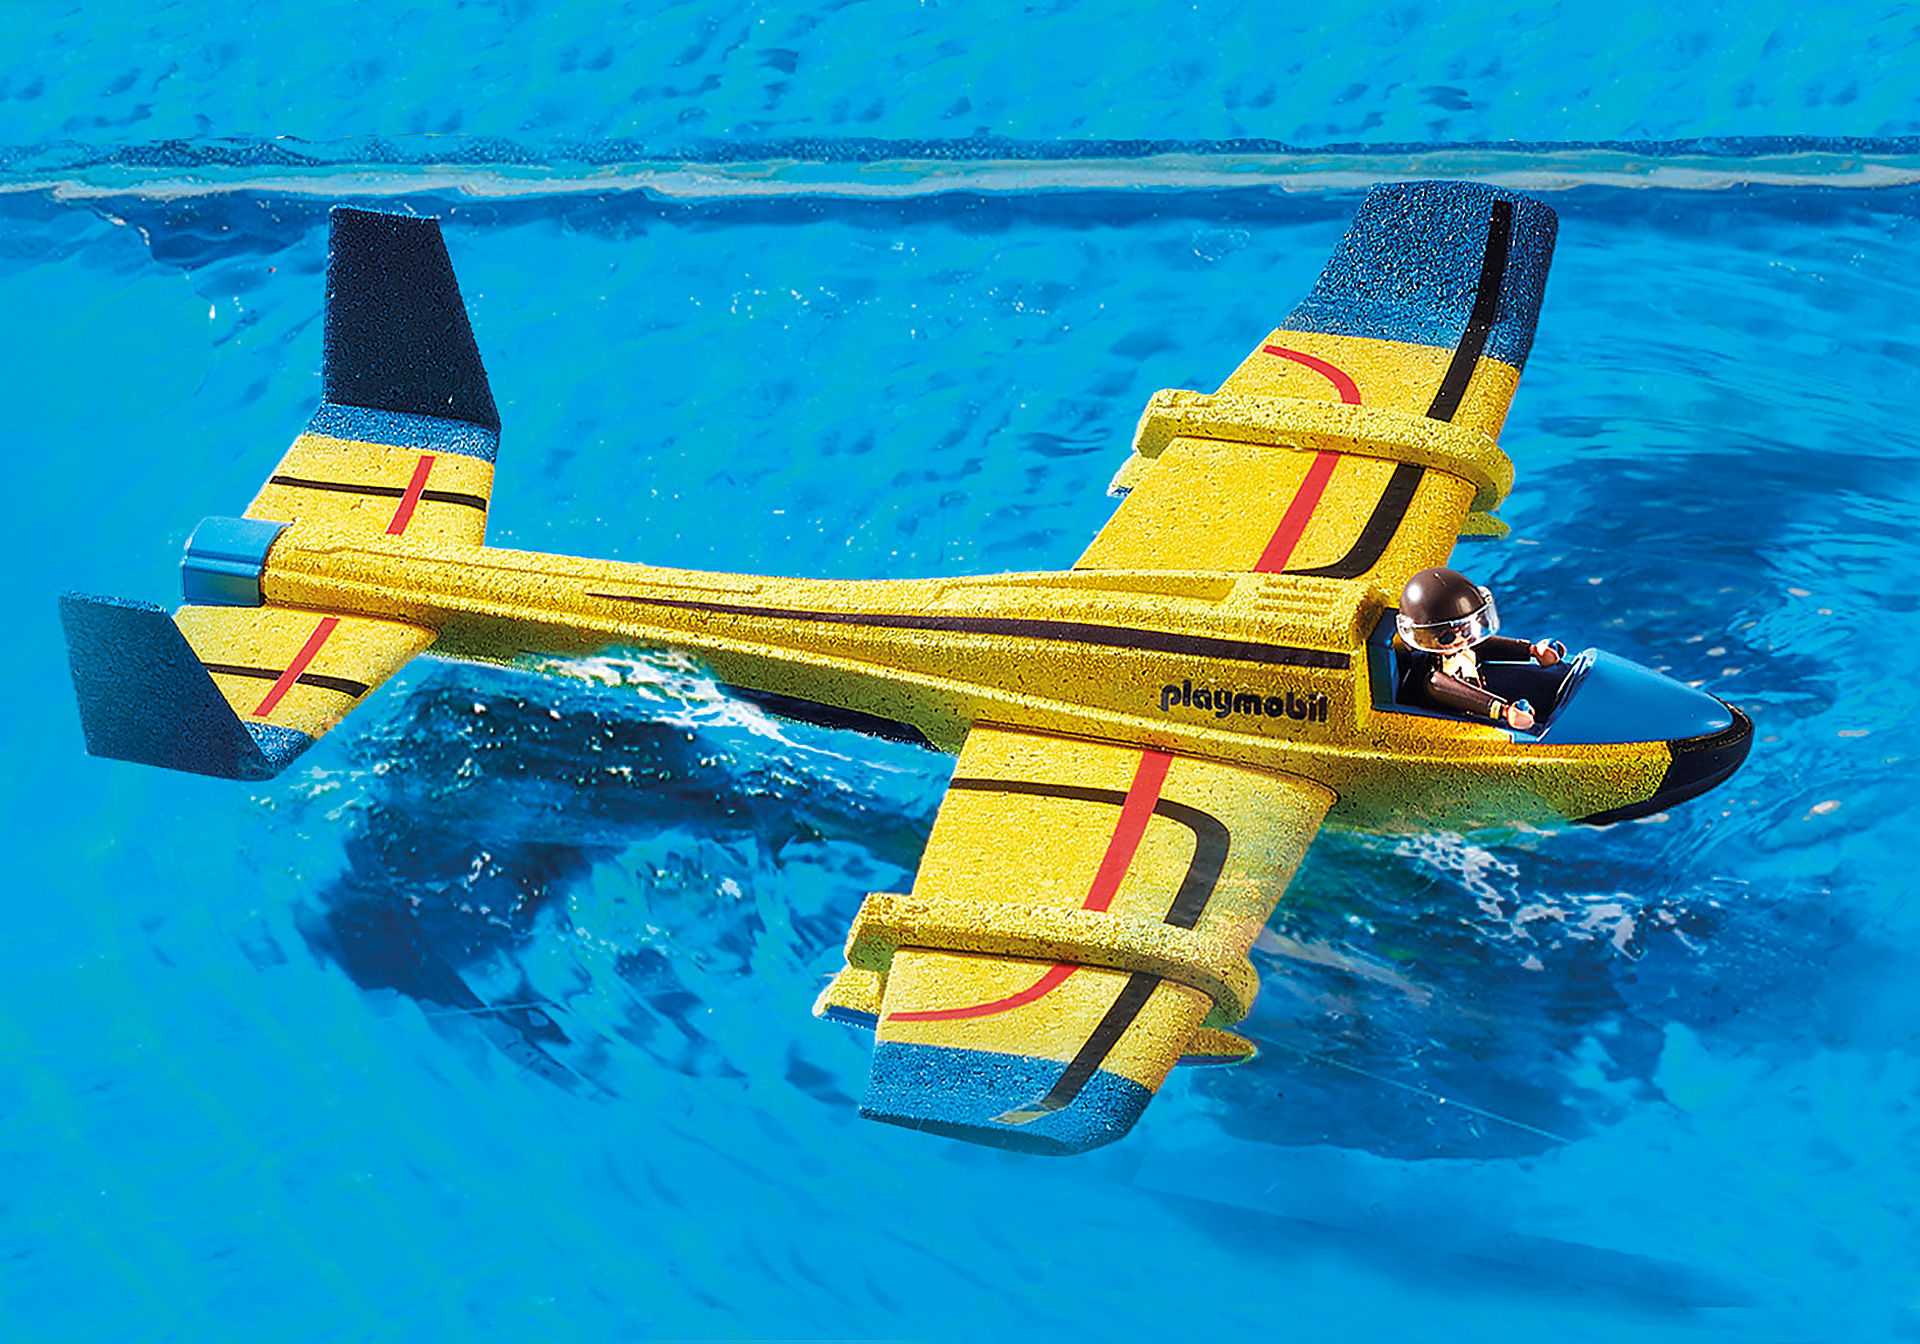 70057 Throw-and-Glide Seaplane zoom image5